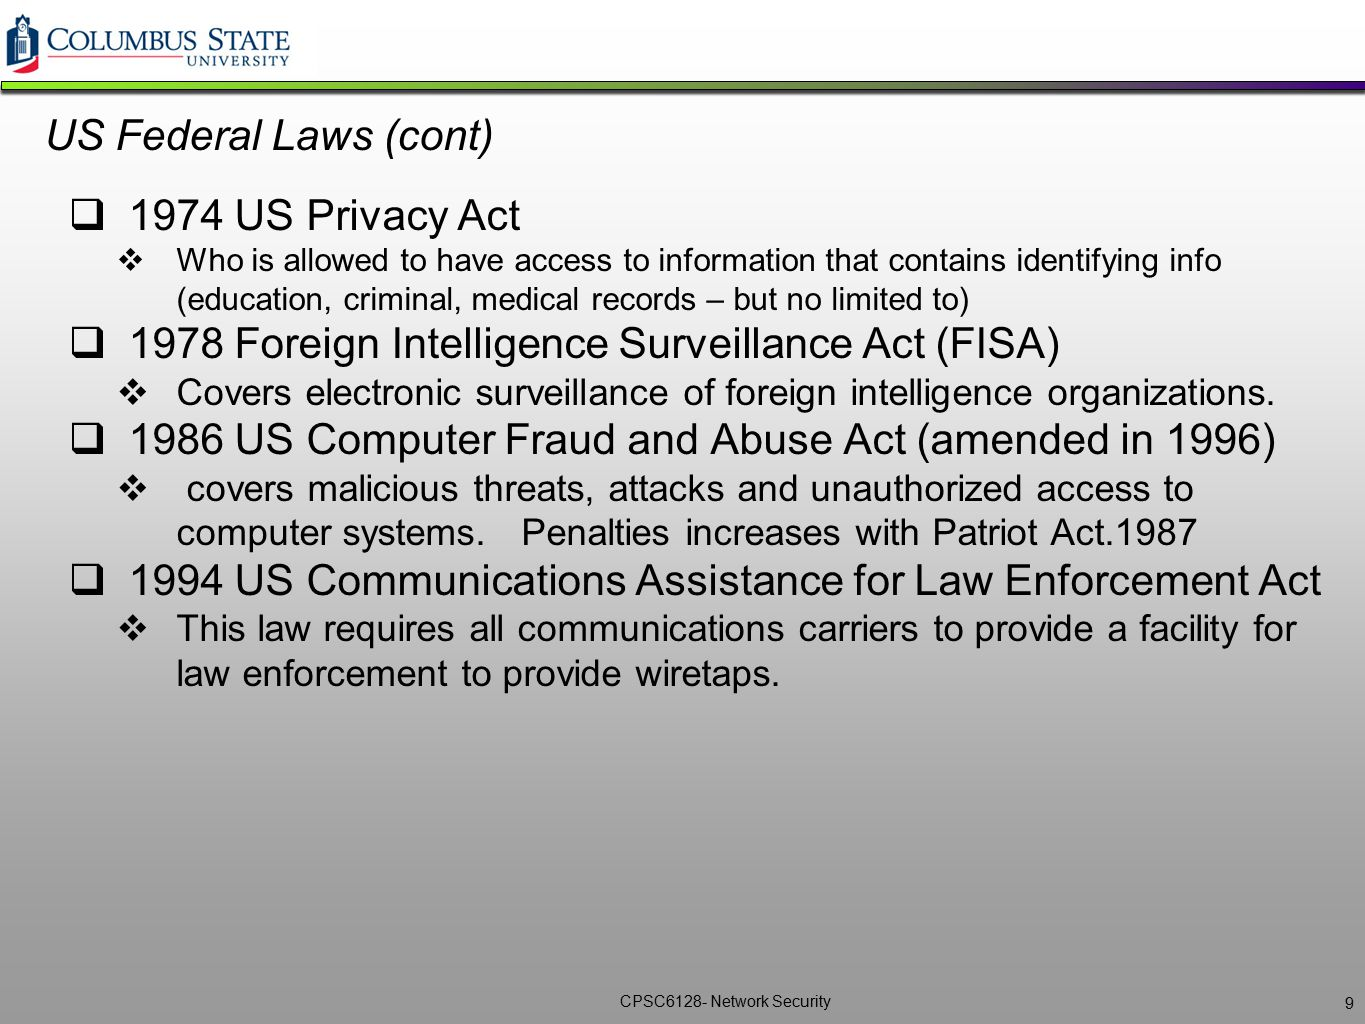 1978 Foreign Intelligence Surveillance Act (FISA)